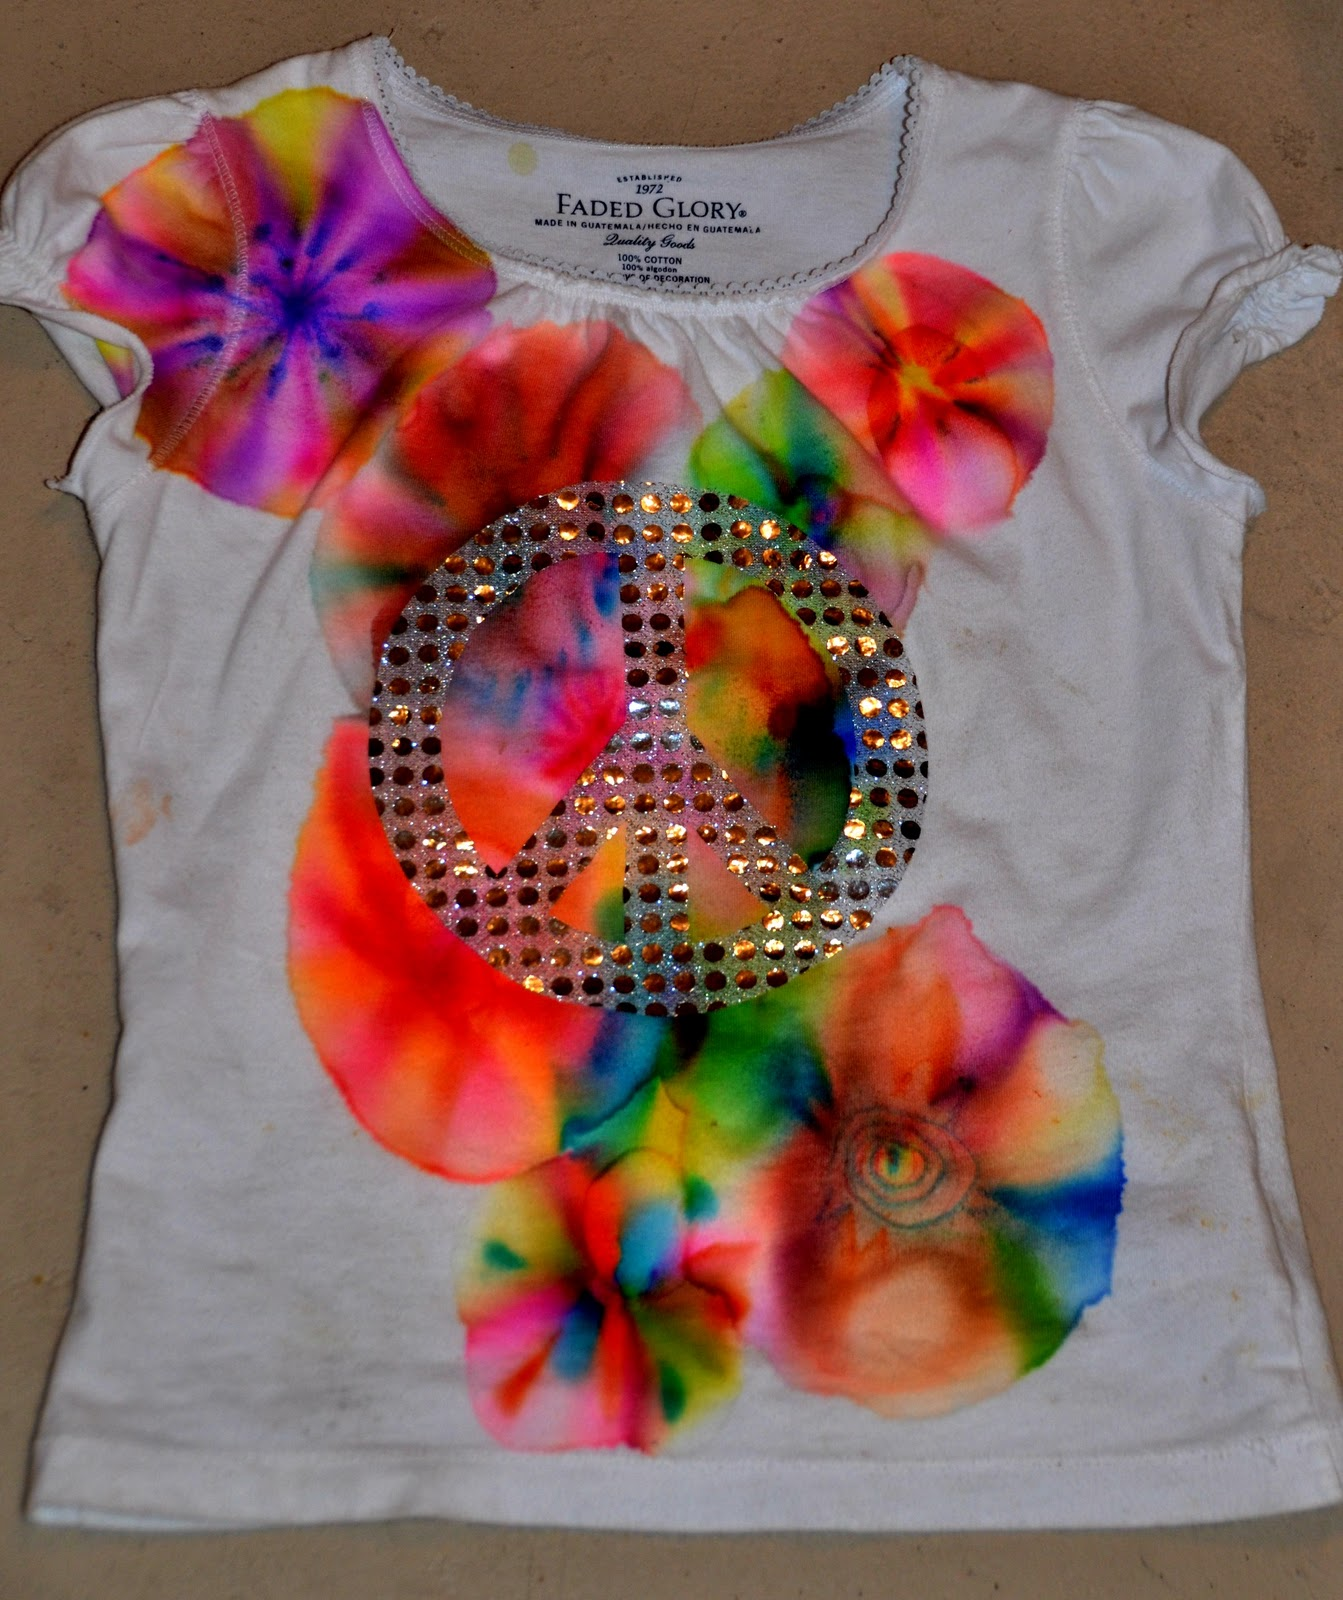 056640228b5c How To Make Tie Dye Shirts With Acrylic Paint - BCD Tofu House